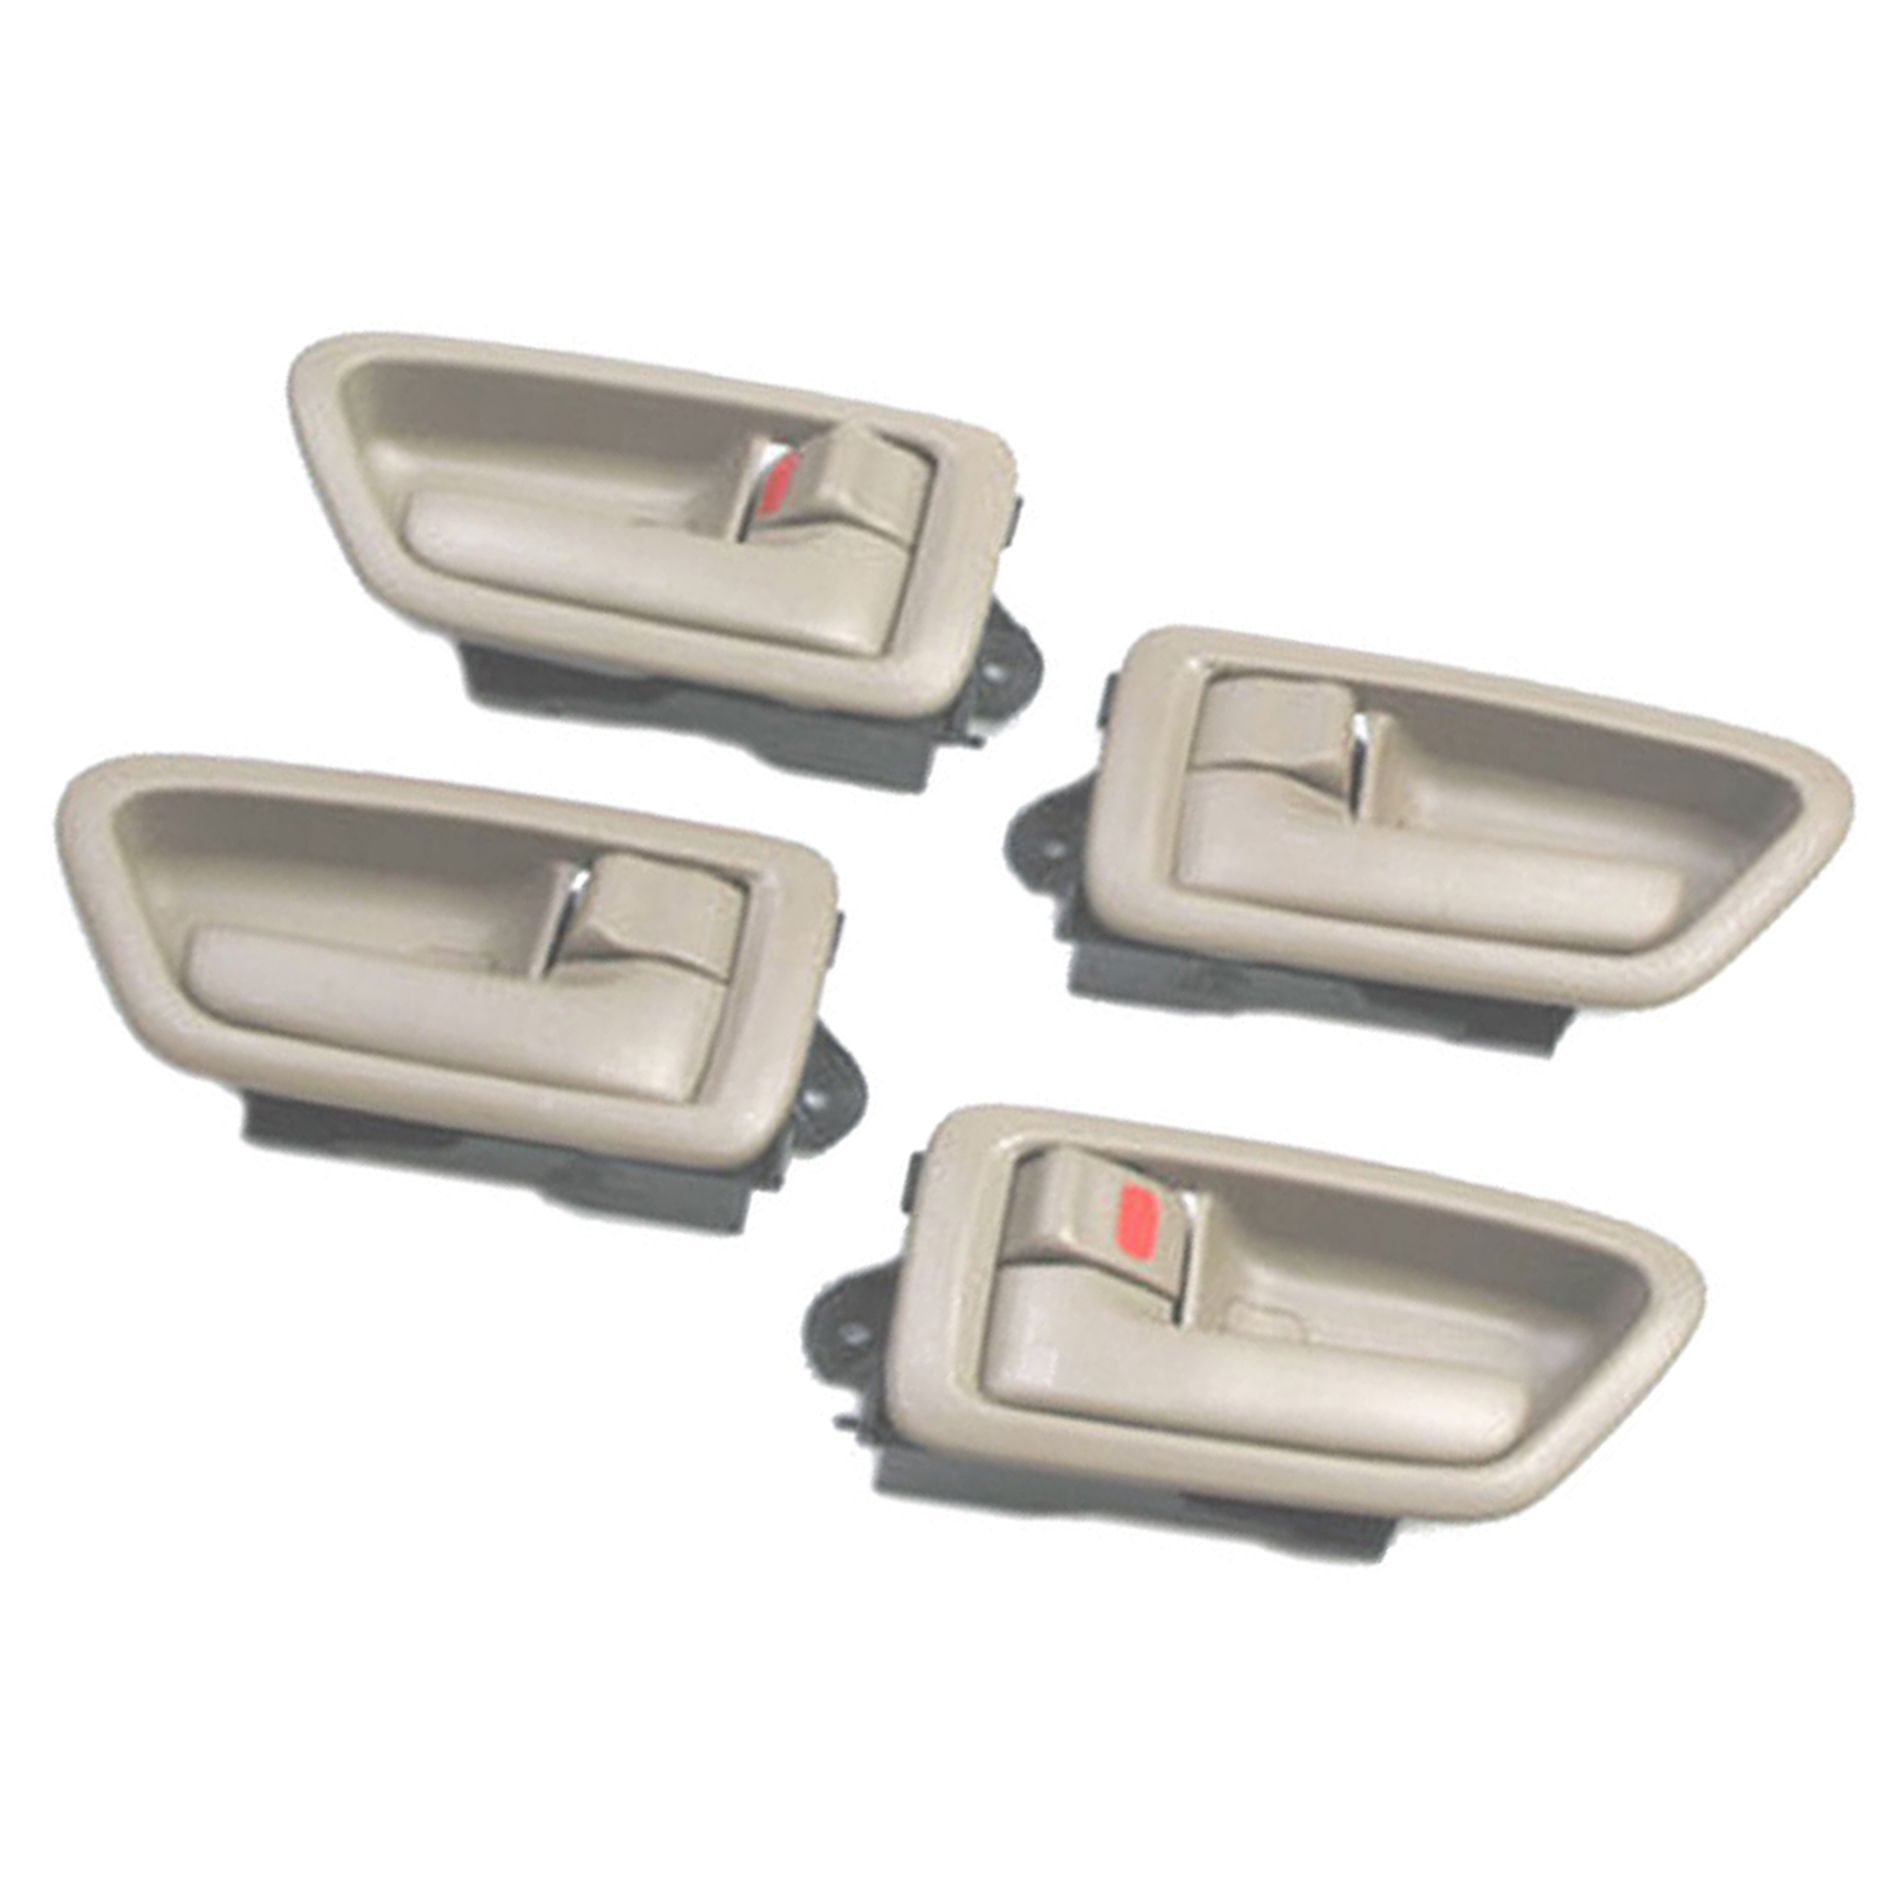 New Door Handle for 1997-2001 Toyota Camry Inside  Left /& Right Set  of 4